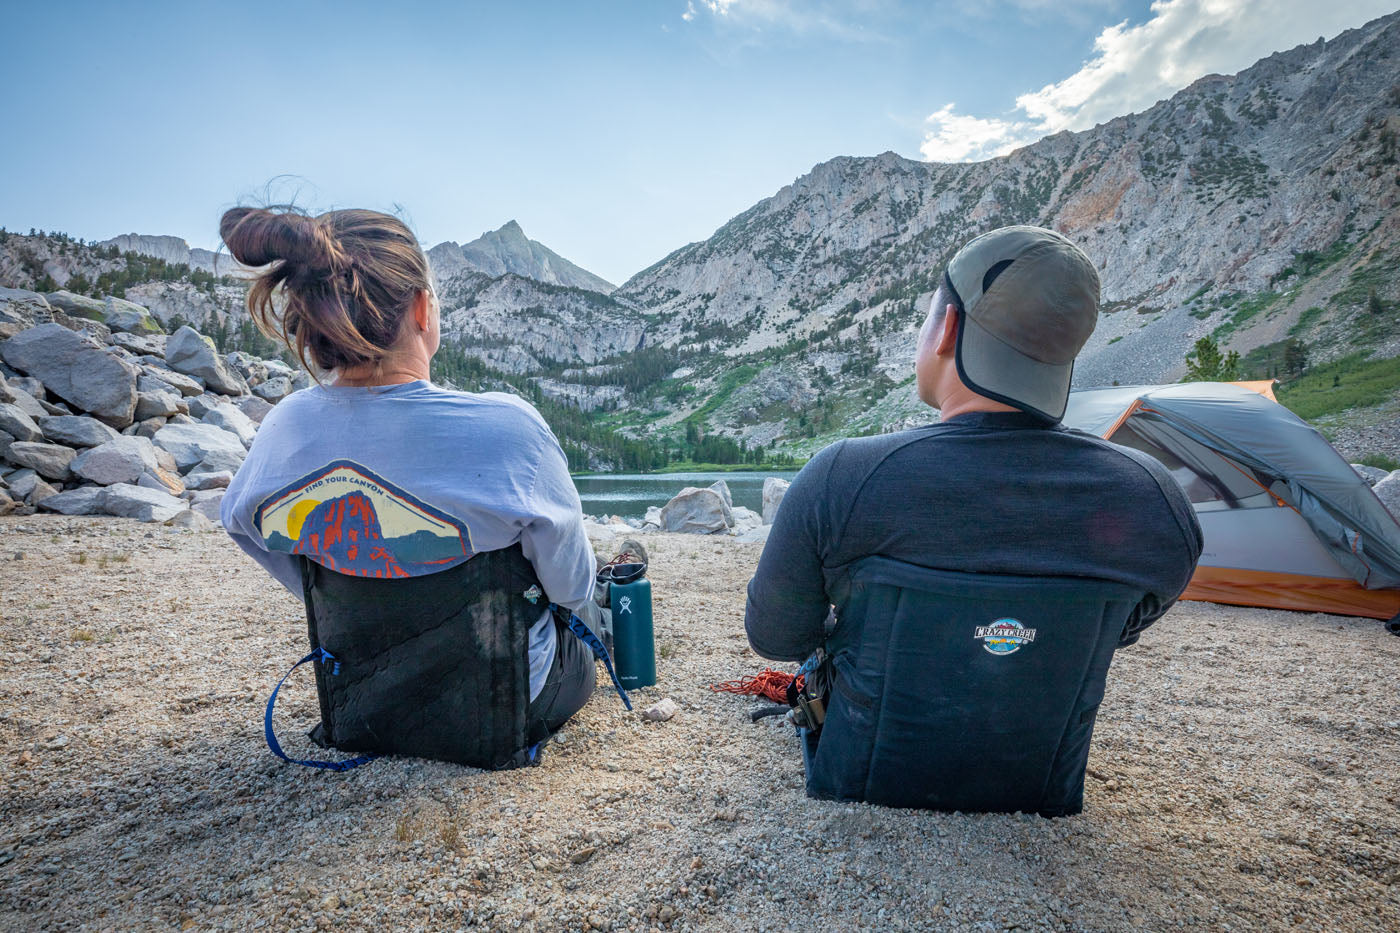 Enjoying the view in Crazy Creek chairs